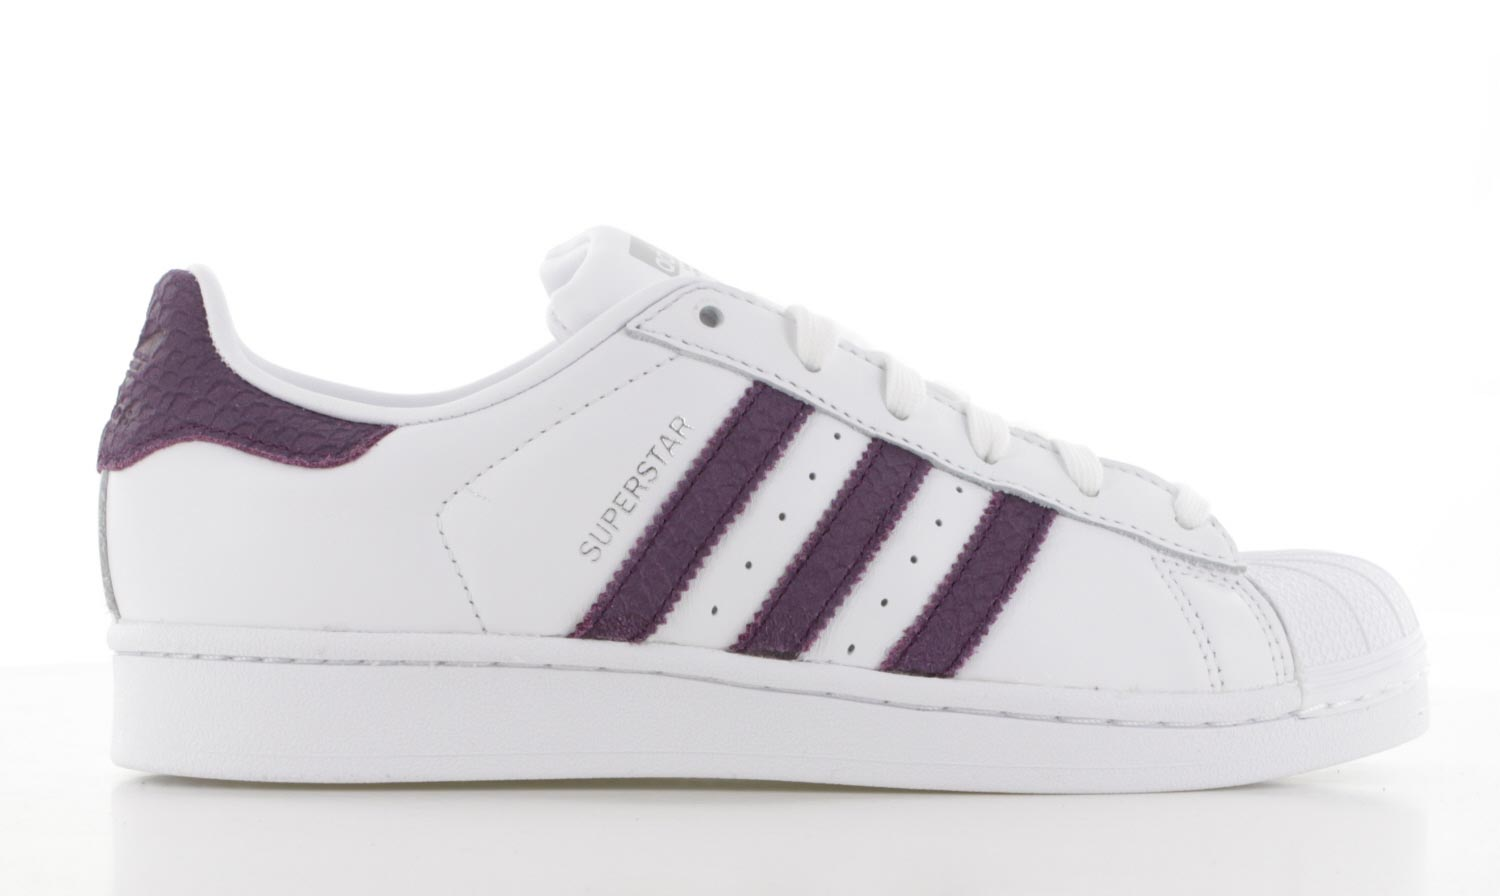 Image of Adidas Superstar Wit/paars Dames